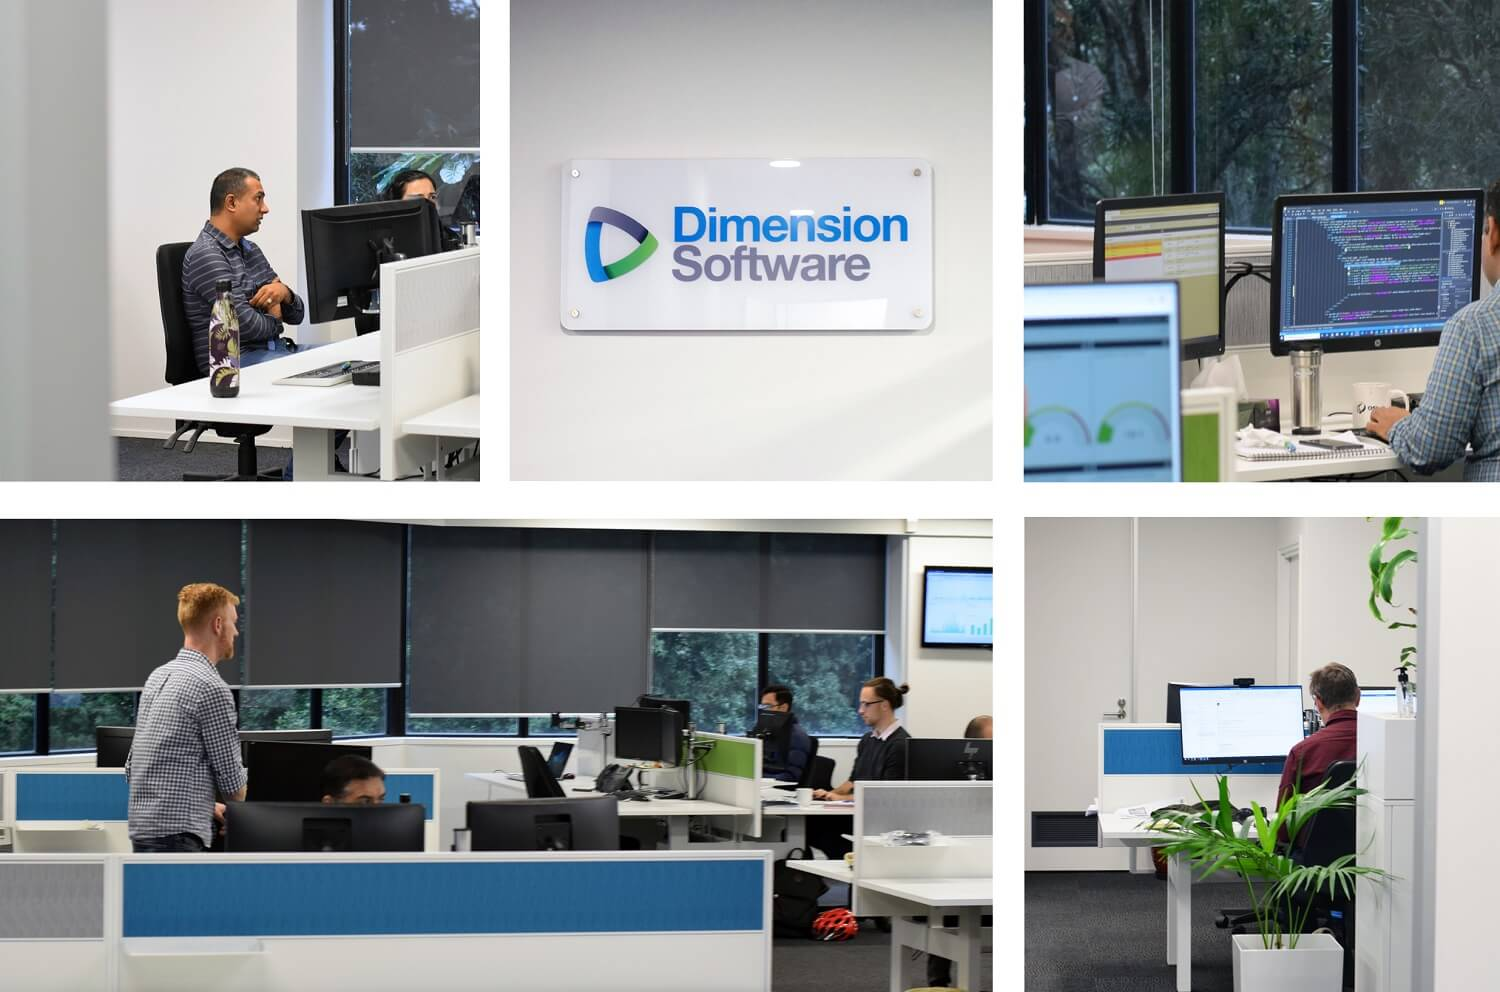 Dimension Software Company Office